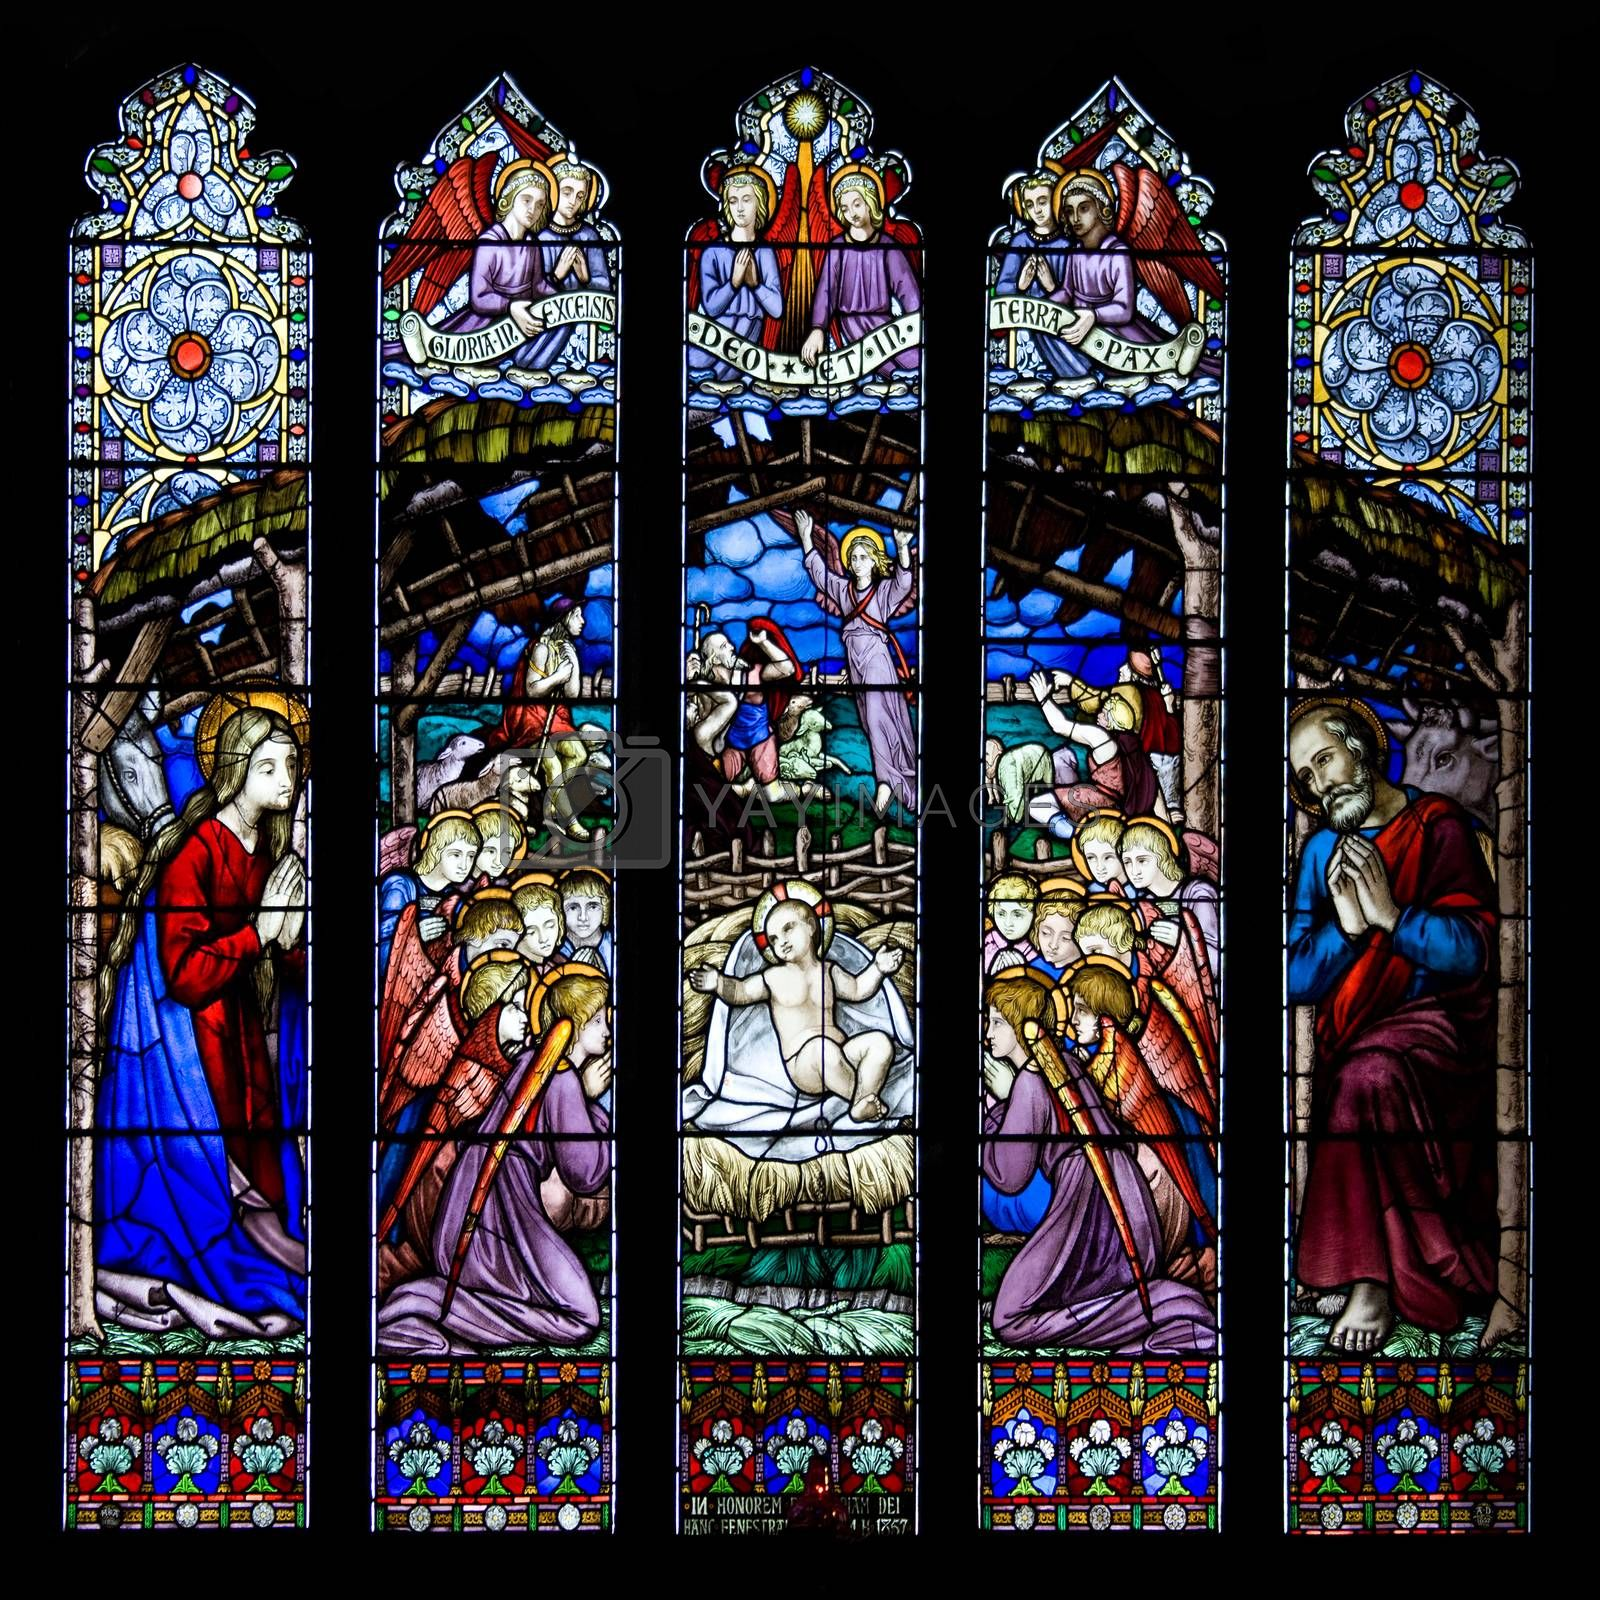 Royalty free image of Westminster Window - Chester Cathedral - UK by SteveAllenPhoto